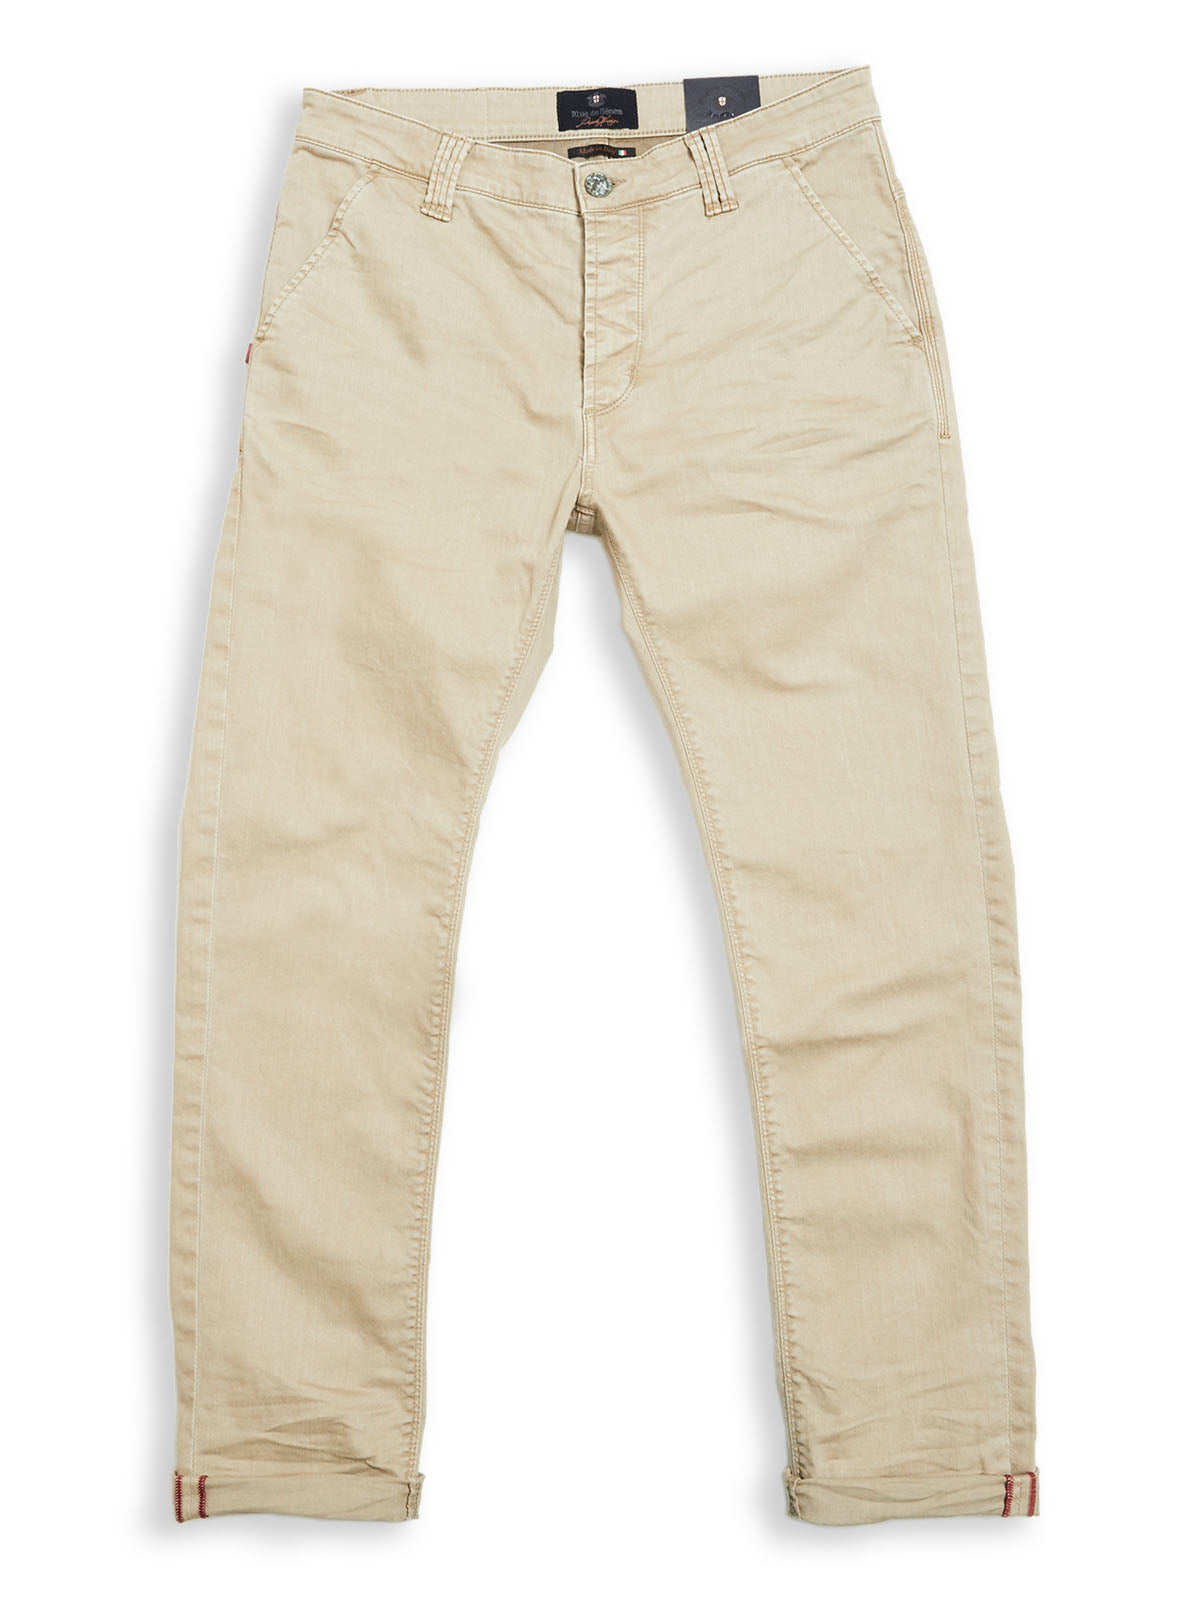 Paulo Pavia Enzyme Trousers - Warm Sand